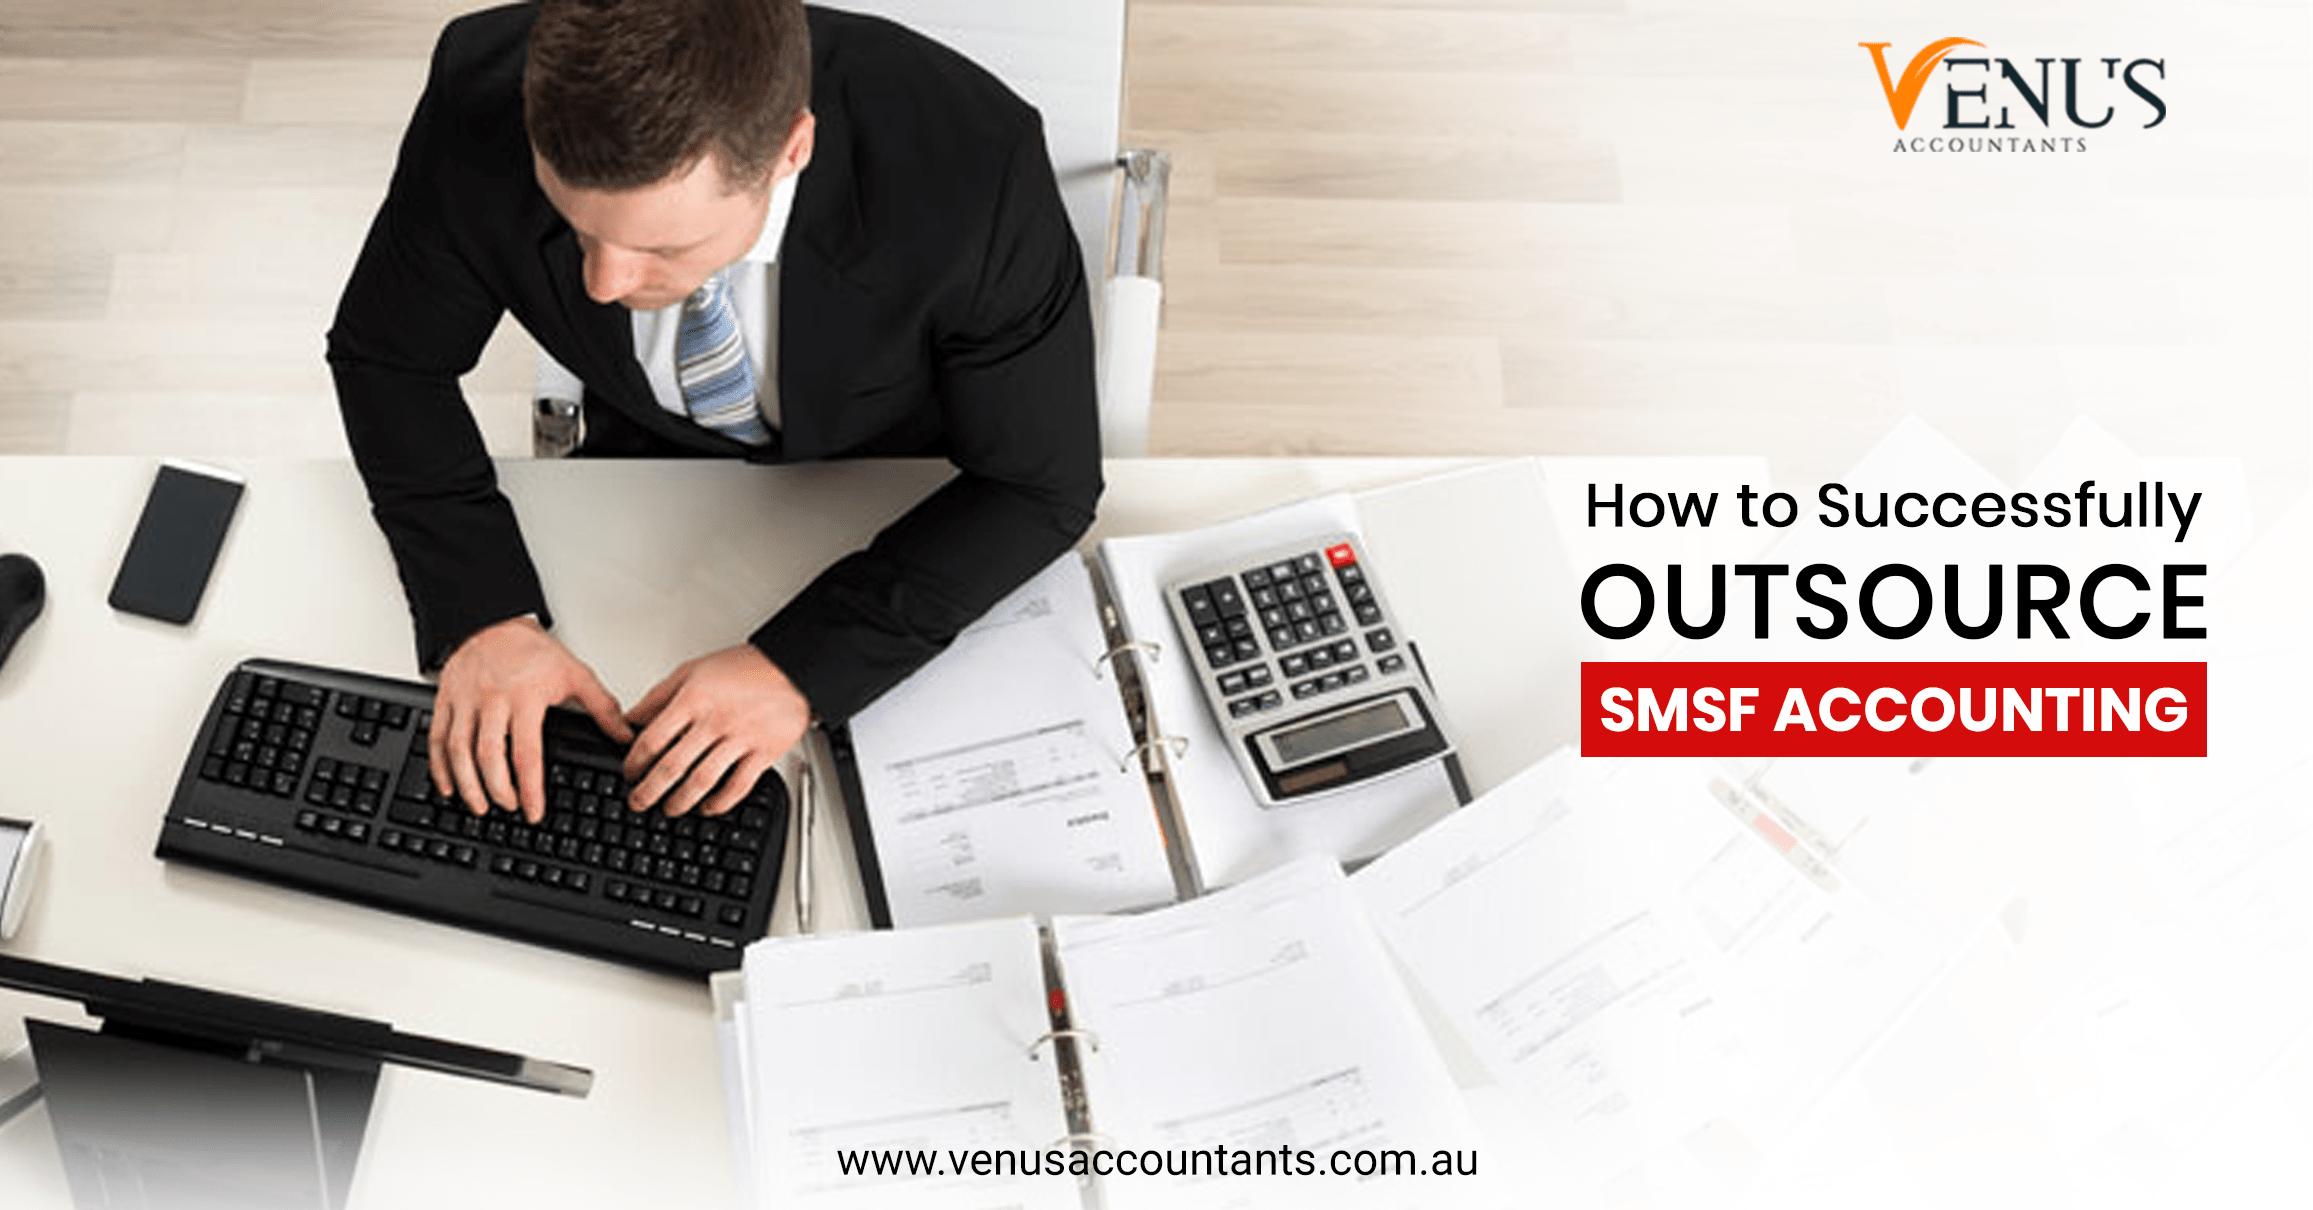 Outsource SMSF Accounting